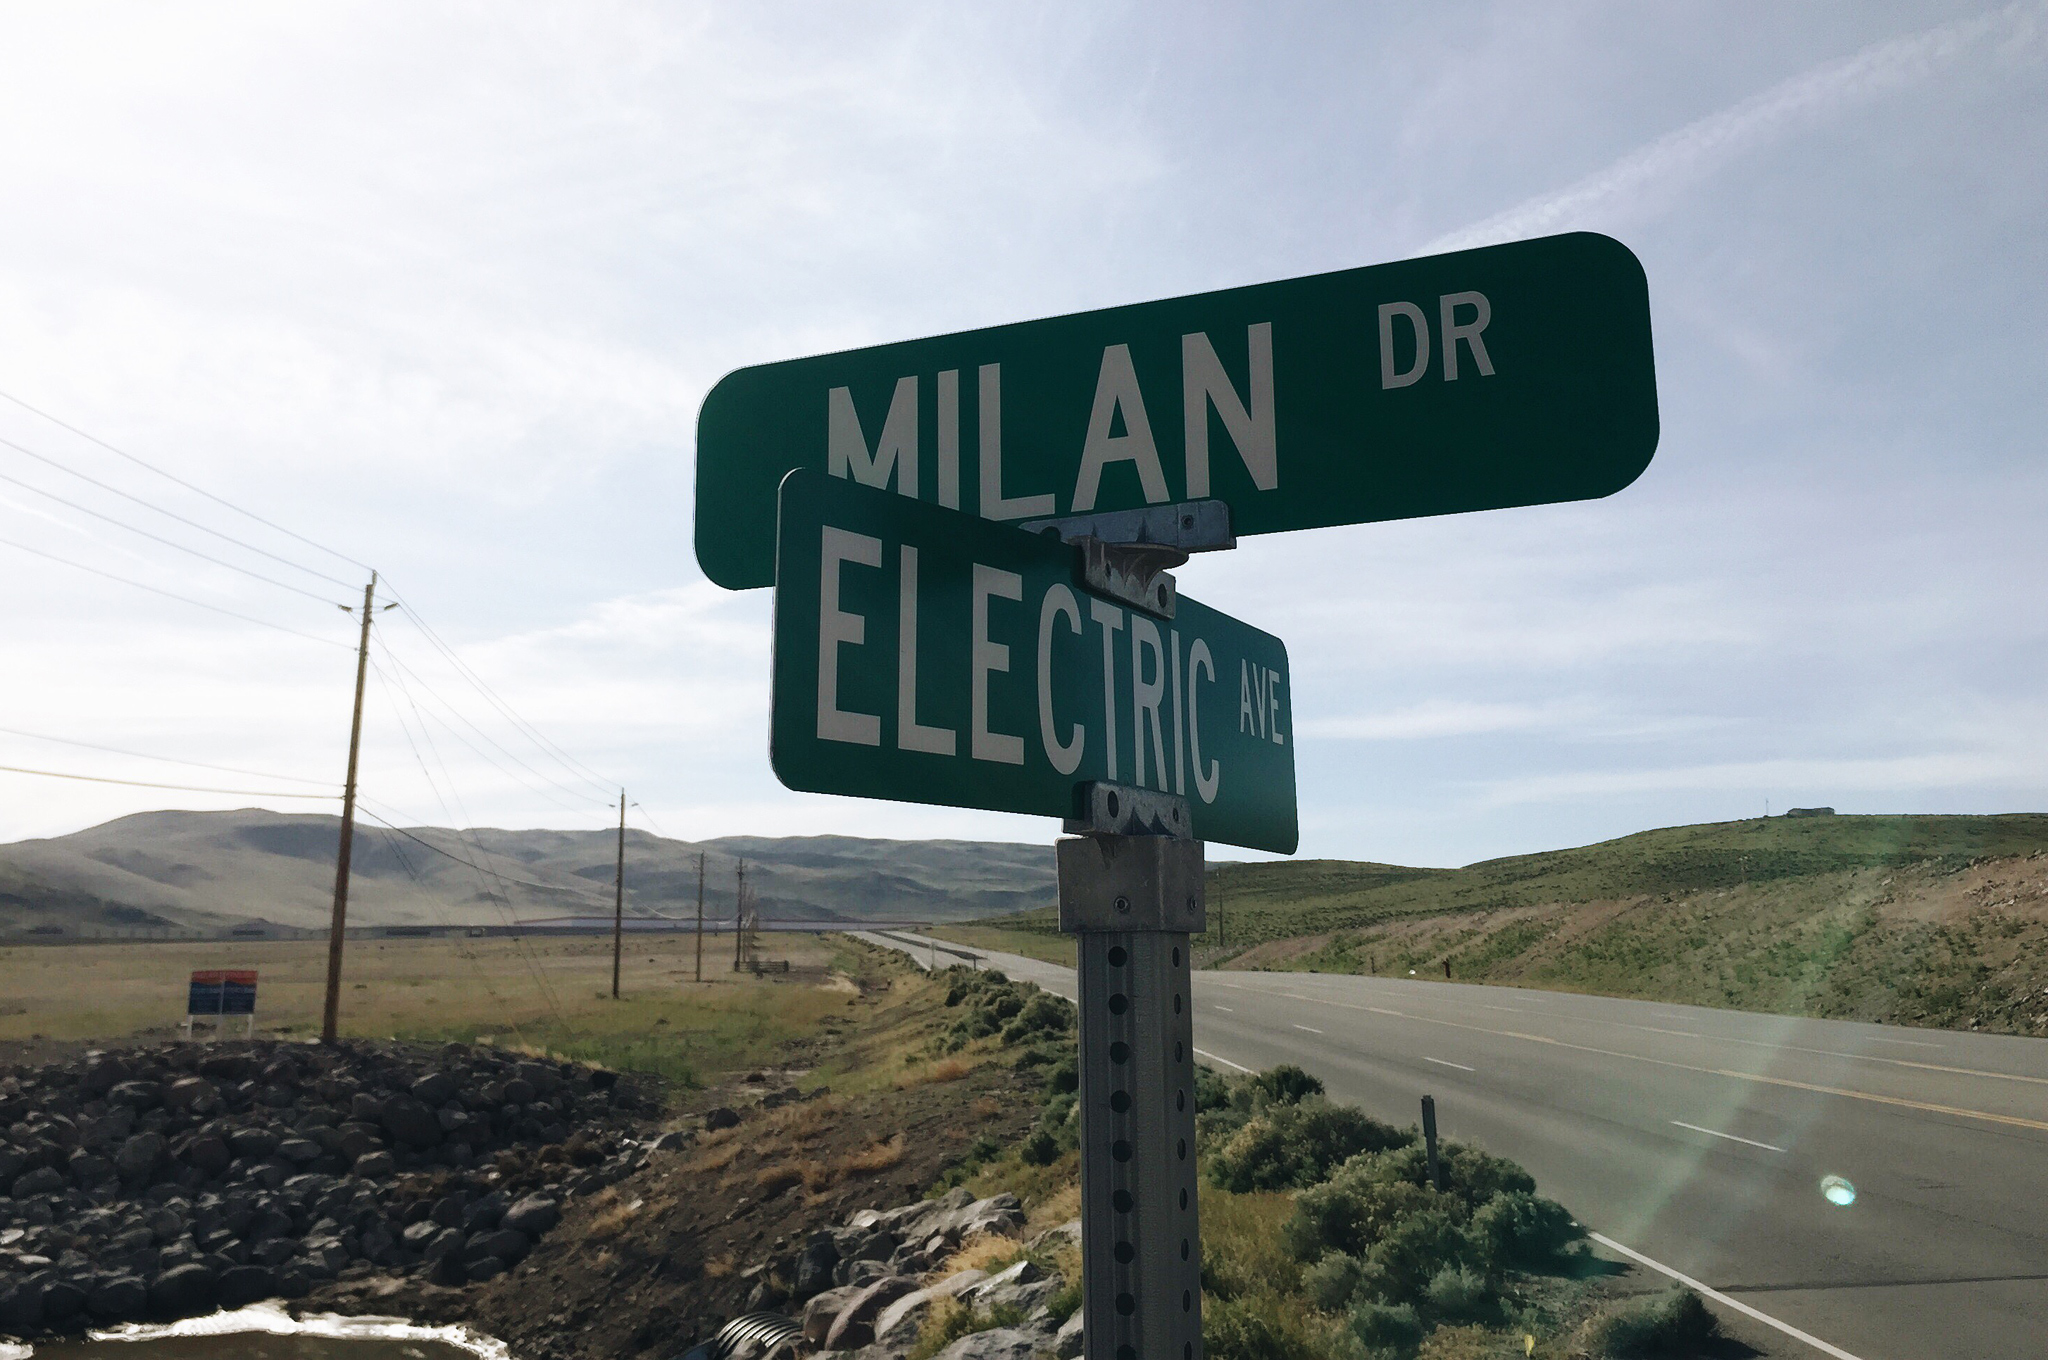 Under this Electric Avenue sign, in the distance, is the Tesla Gigafactory